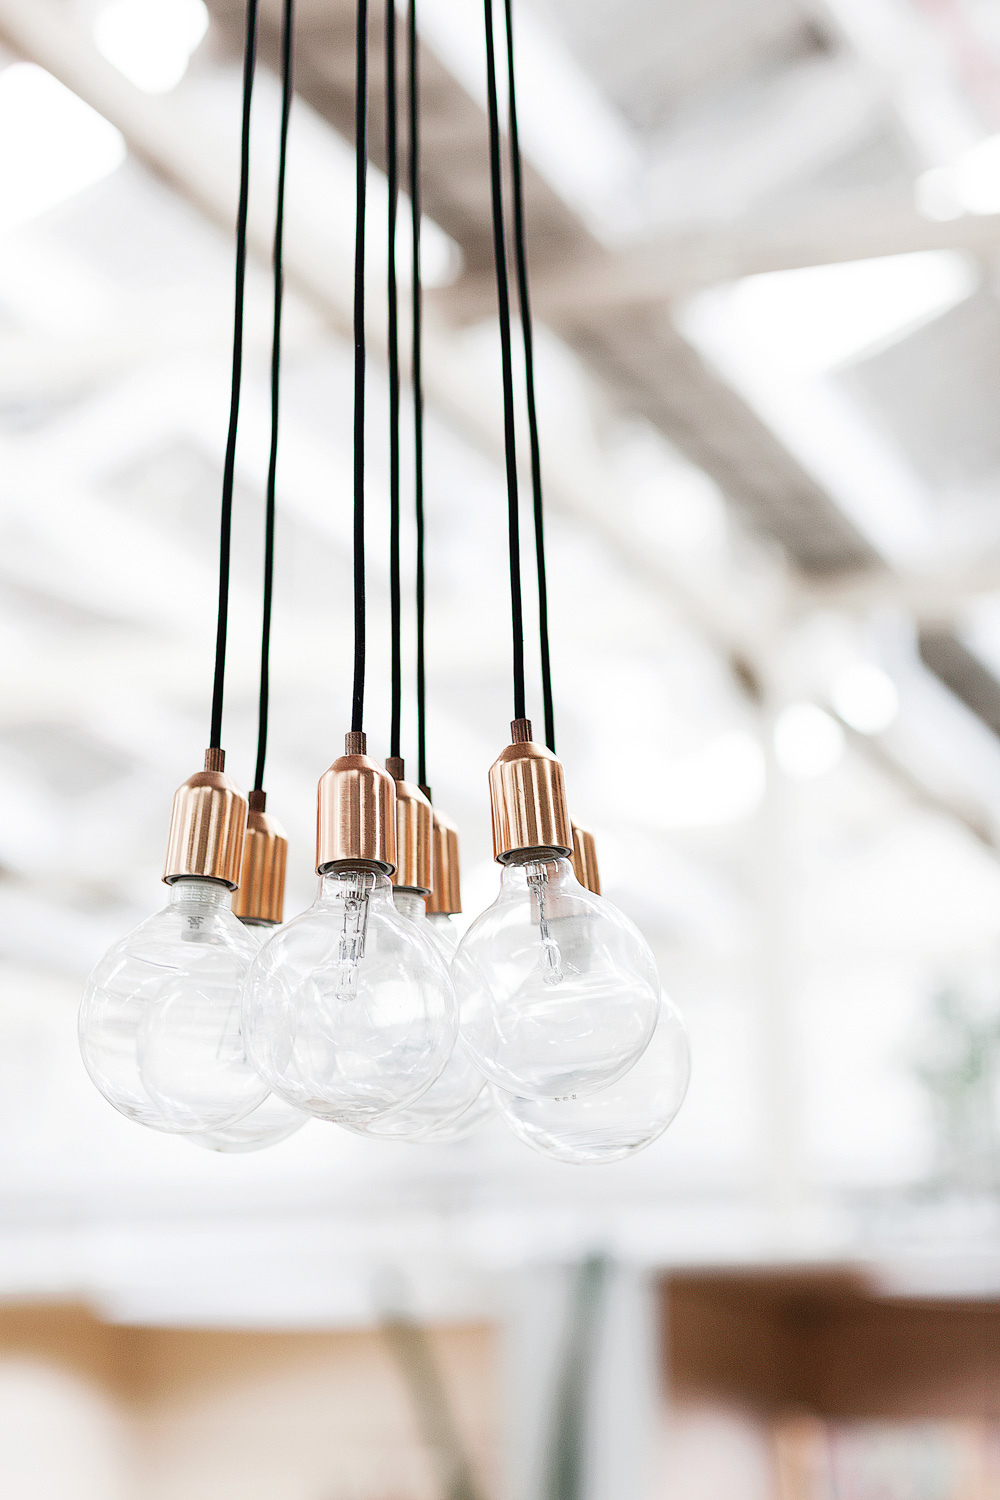 Globe light with copper plug .Koskela in Rosebery.Photography by  Richard Whitbread .